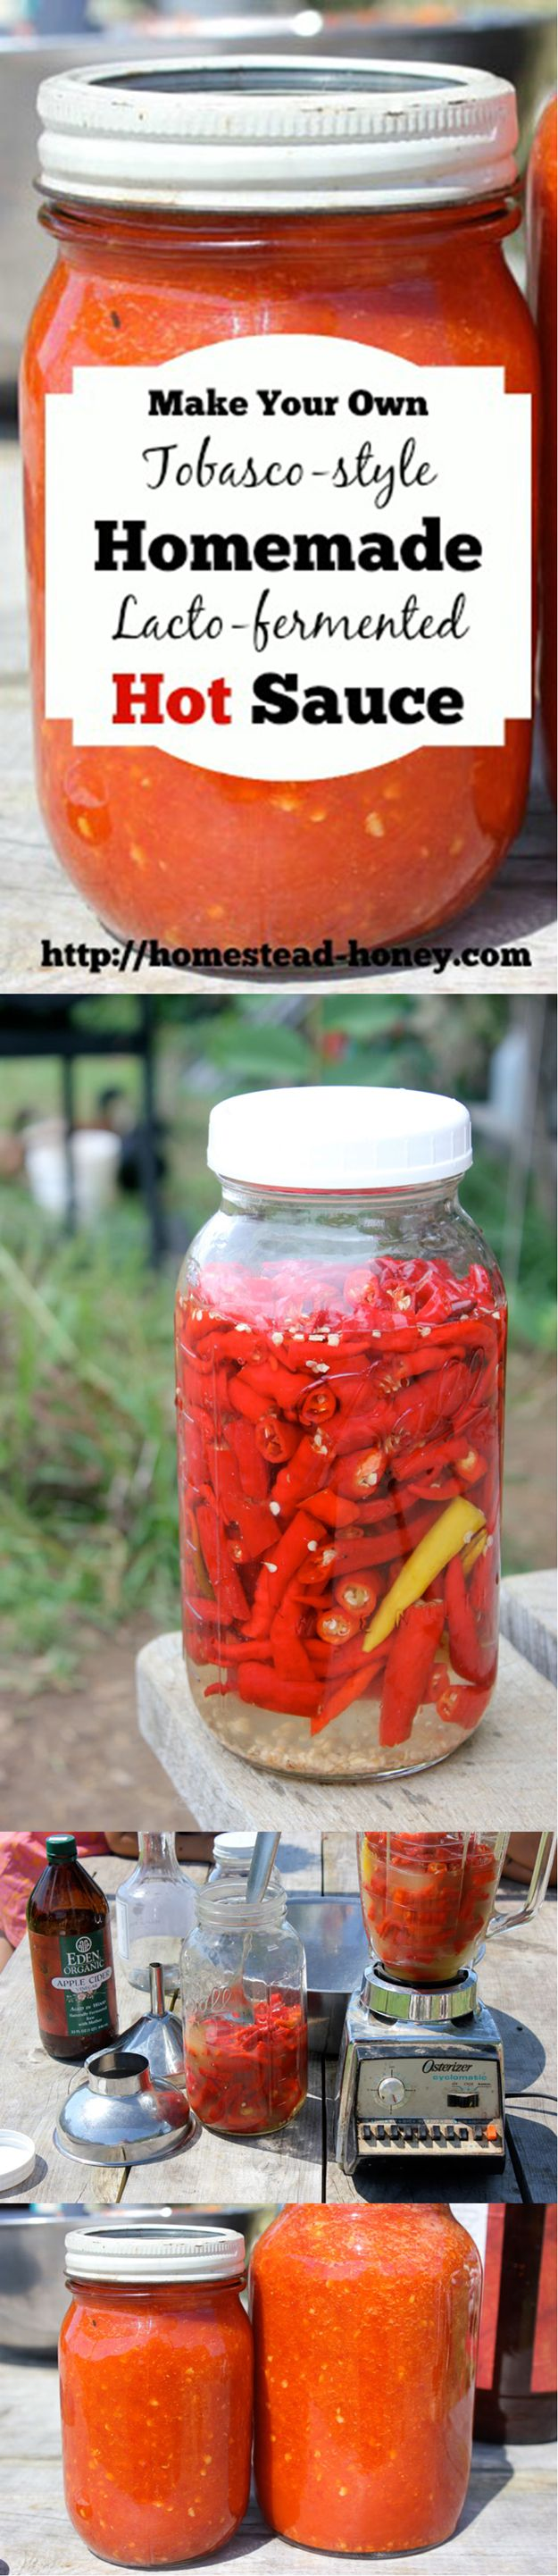 Tobasco-Style Homemade Lacto-Fermented Hot Sauce | Healthy Homemade Hot Sauce Recipe by DIY Ready at  http://diyready.com/top-14-hot-sauce-recipes/